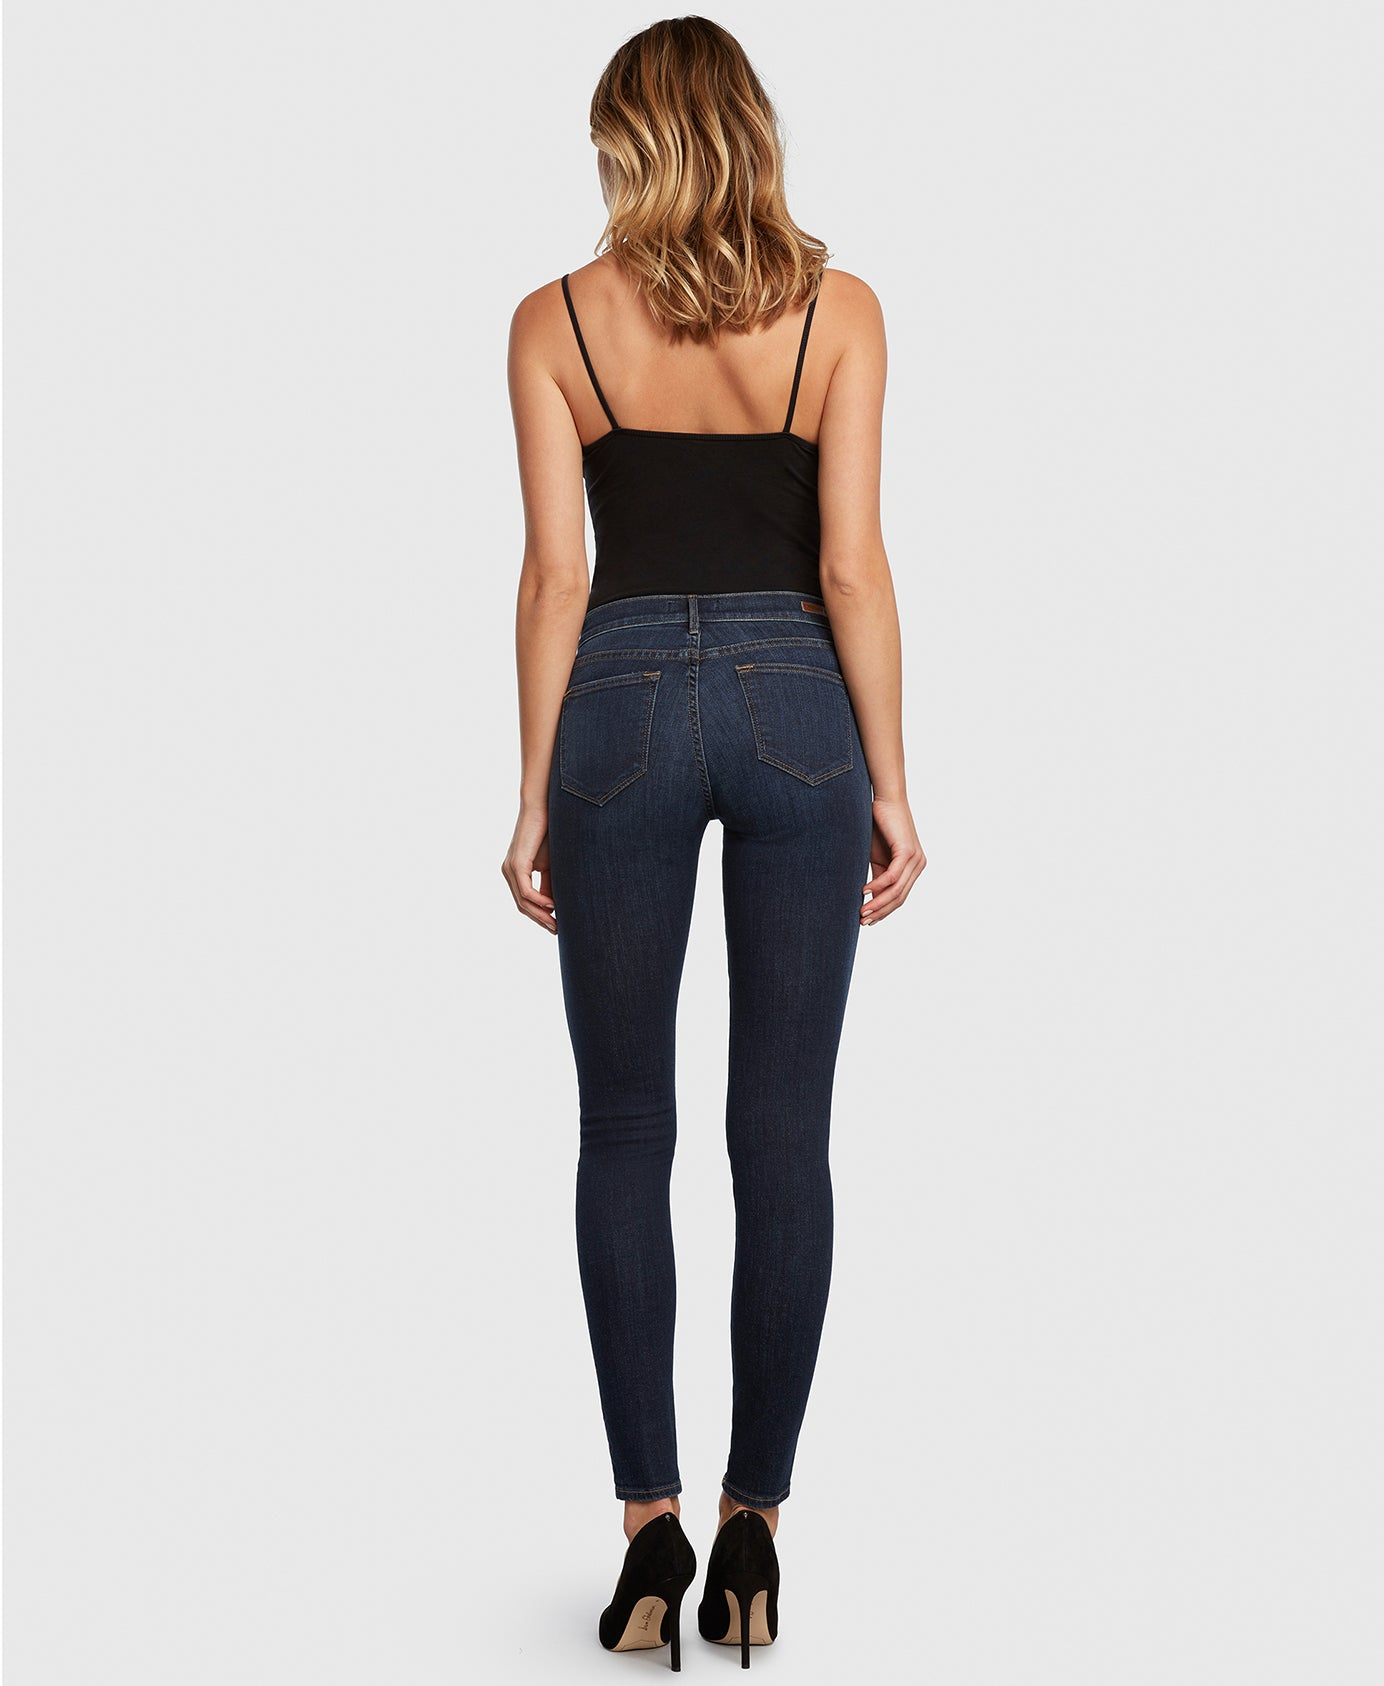 Principle DREAMER in Poison Heart dark wash skinny jeans back